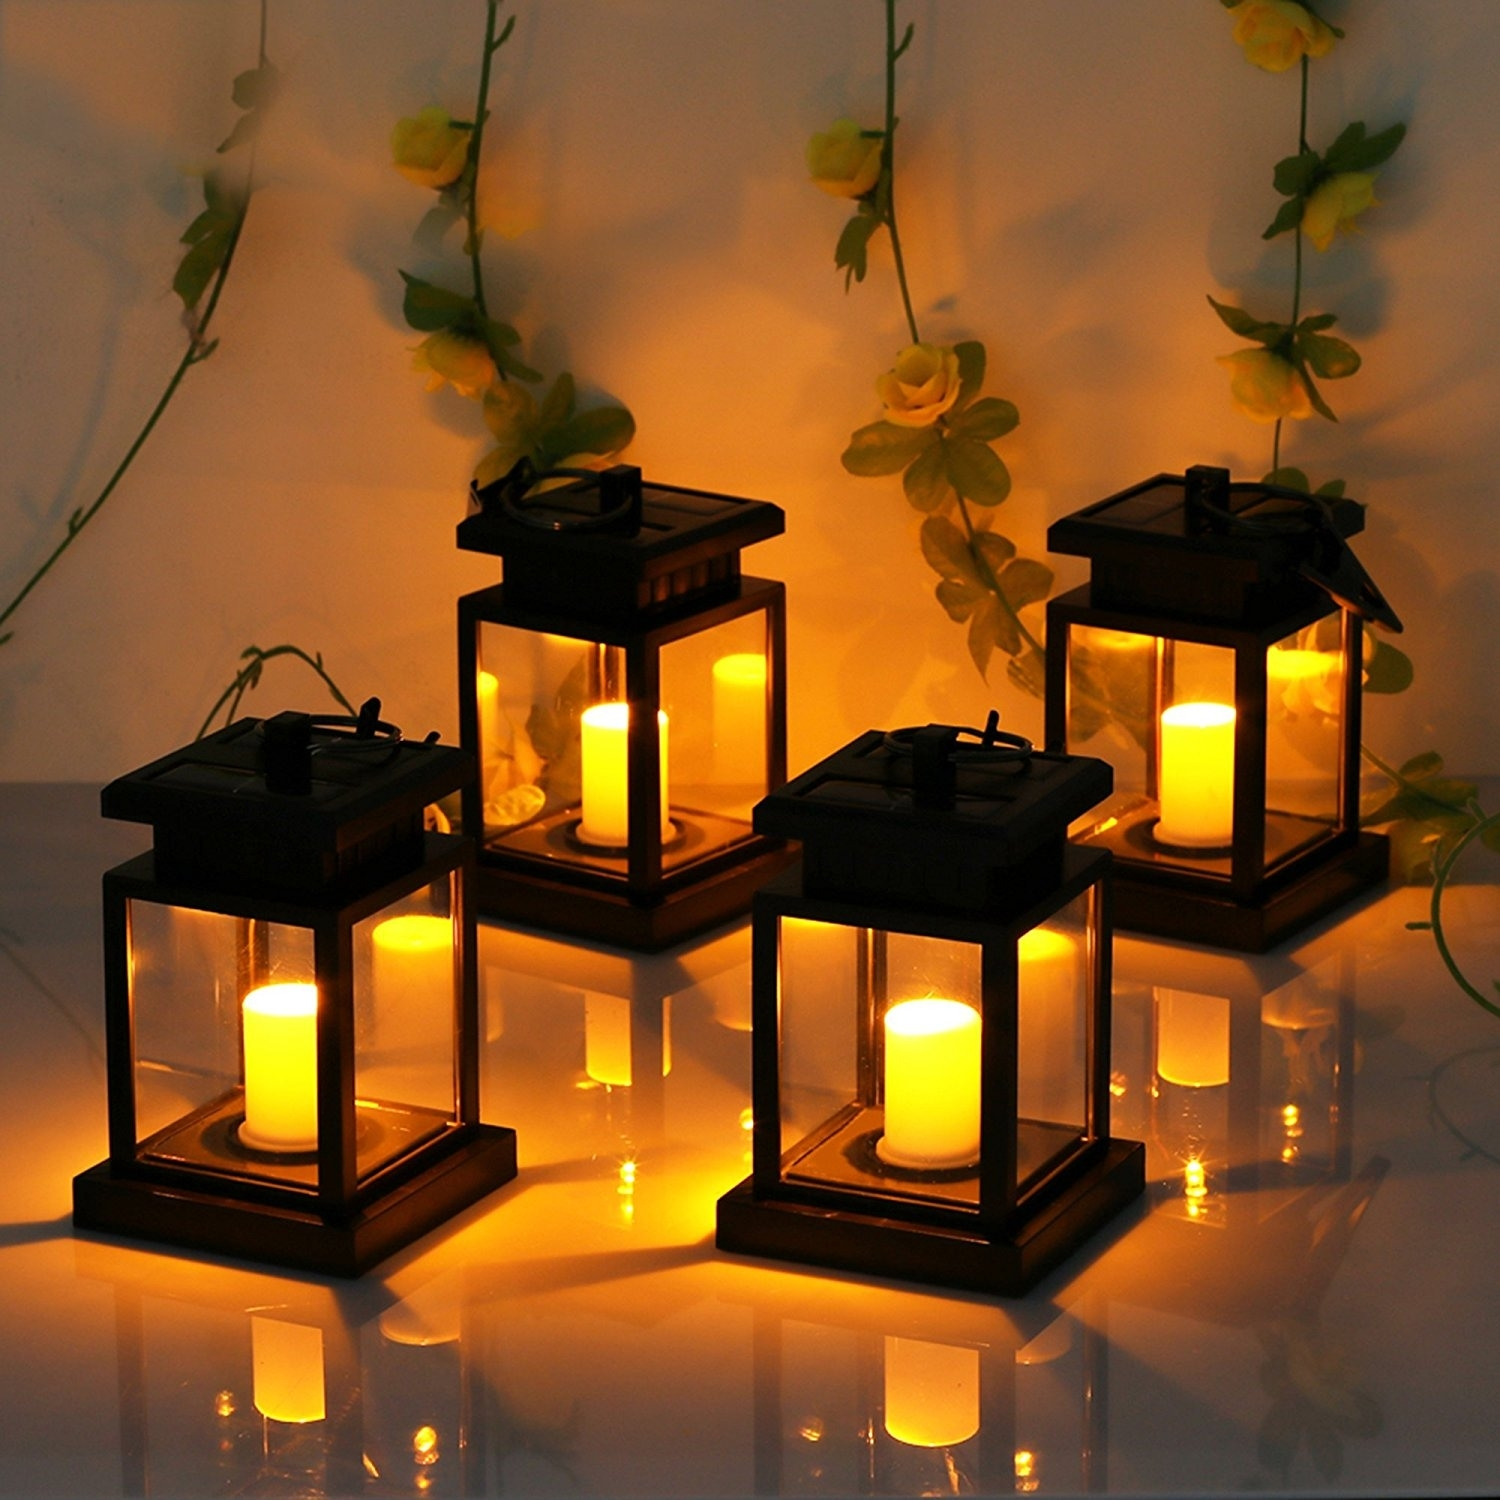 Lvjing Solar Lights Outdoor Hanging Lantern 4 Pack Led From Cute with regard to Outdoor Hanging Japanese Lanterns (Image 13 of 20)